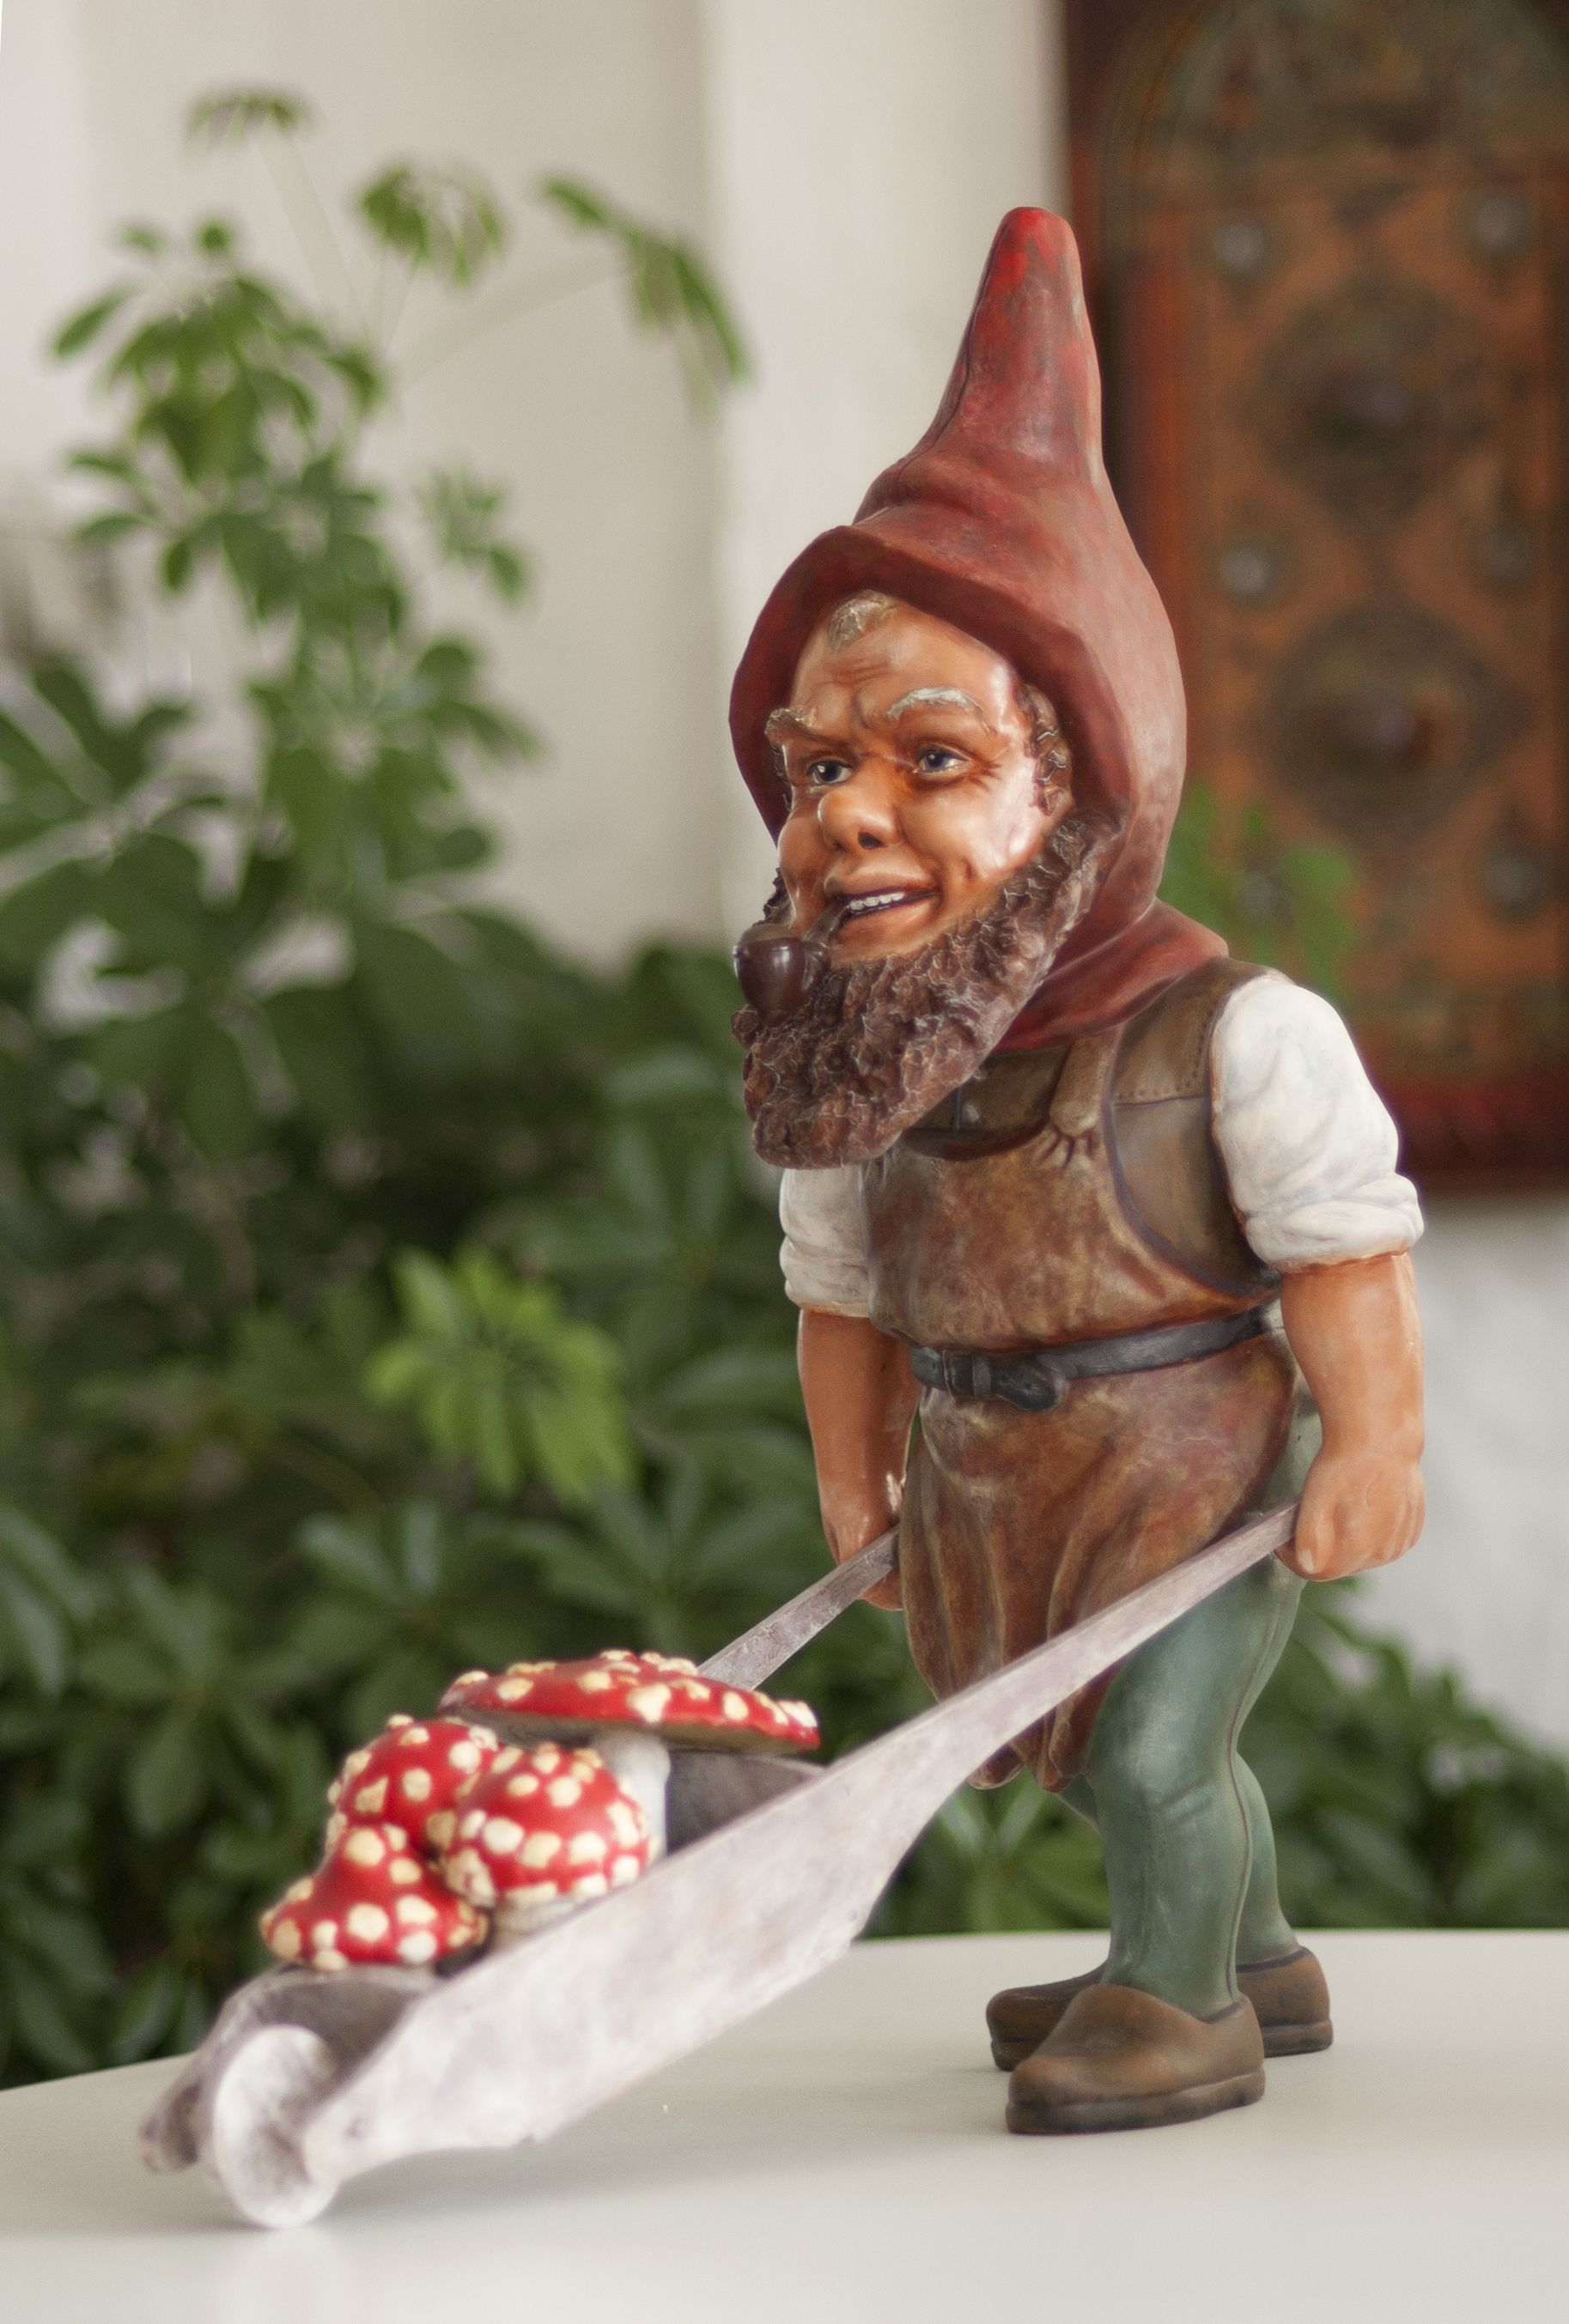 Heissner Gnome Designed By Carl Nuechter 1910 Modified 1950 With A Slickerbeard As A Part Of This Rare Series Gnomes Gnome Garden Fairy Castle